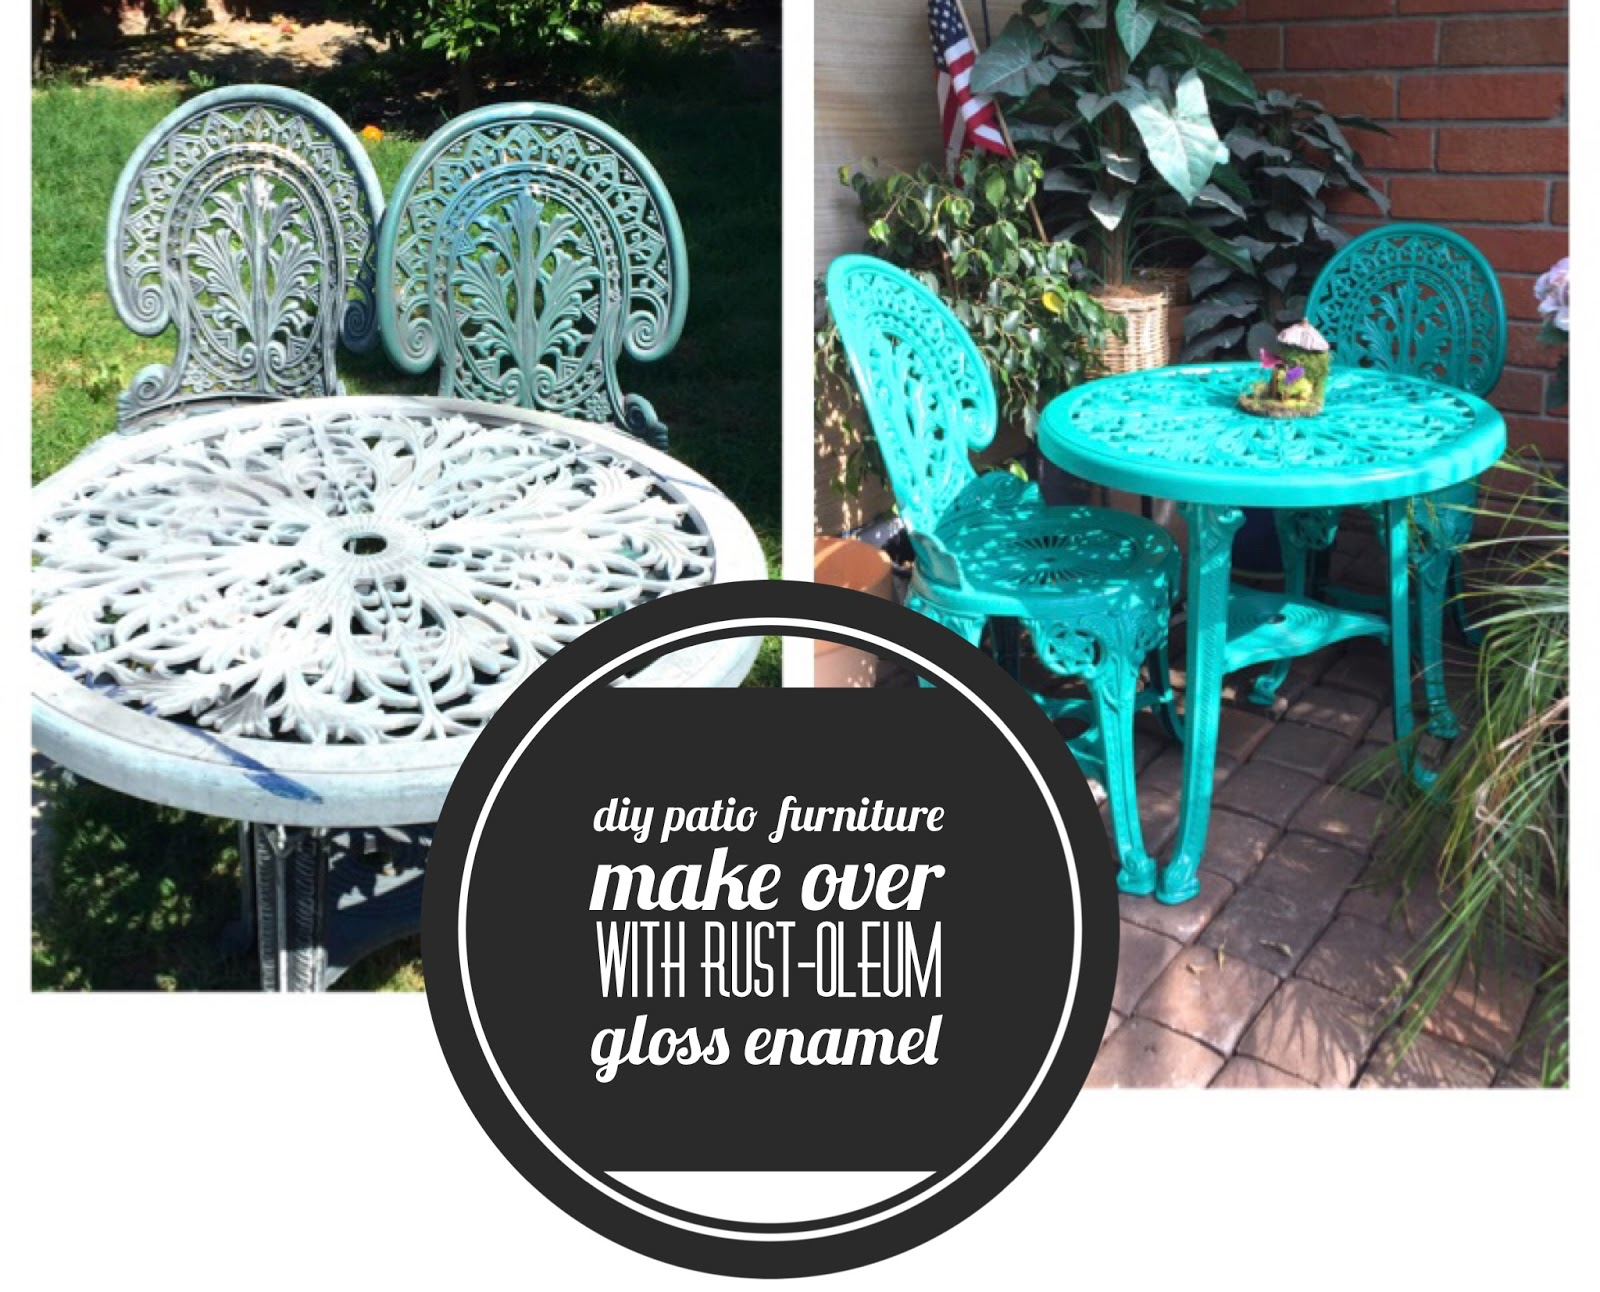 Keep Calm and Craft On: DIY Refurbished Patio Furniture Make